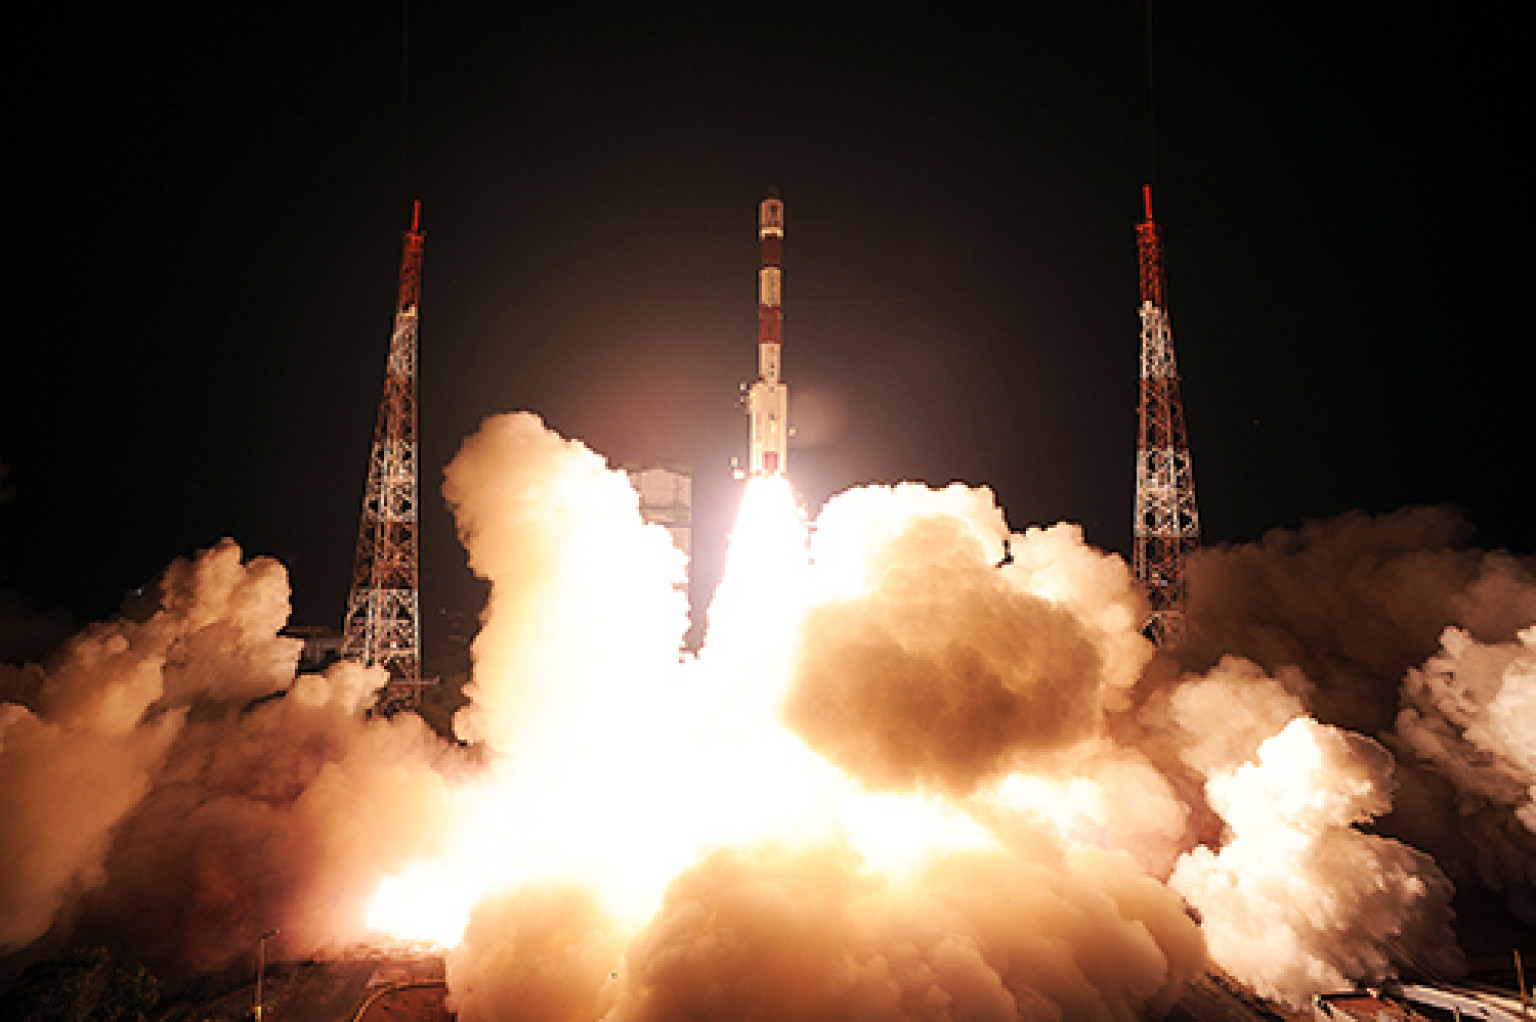 india's space programme On september 28, indian space research organisation's (isro) pslv-c30  mission successfully launched seven satellites into space.